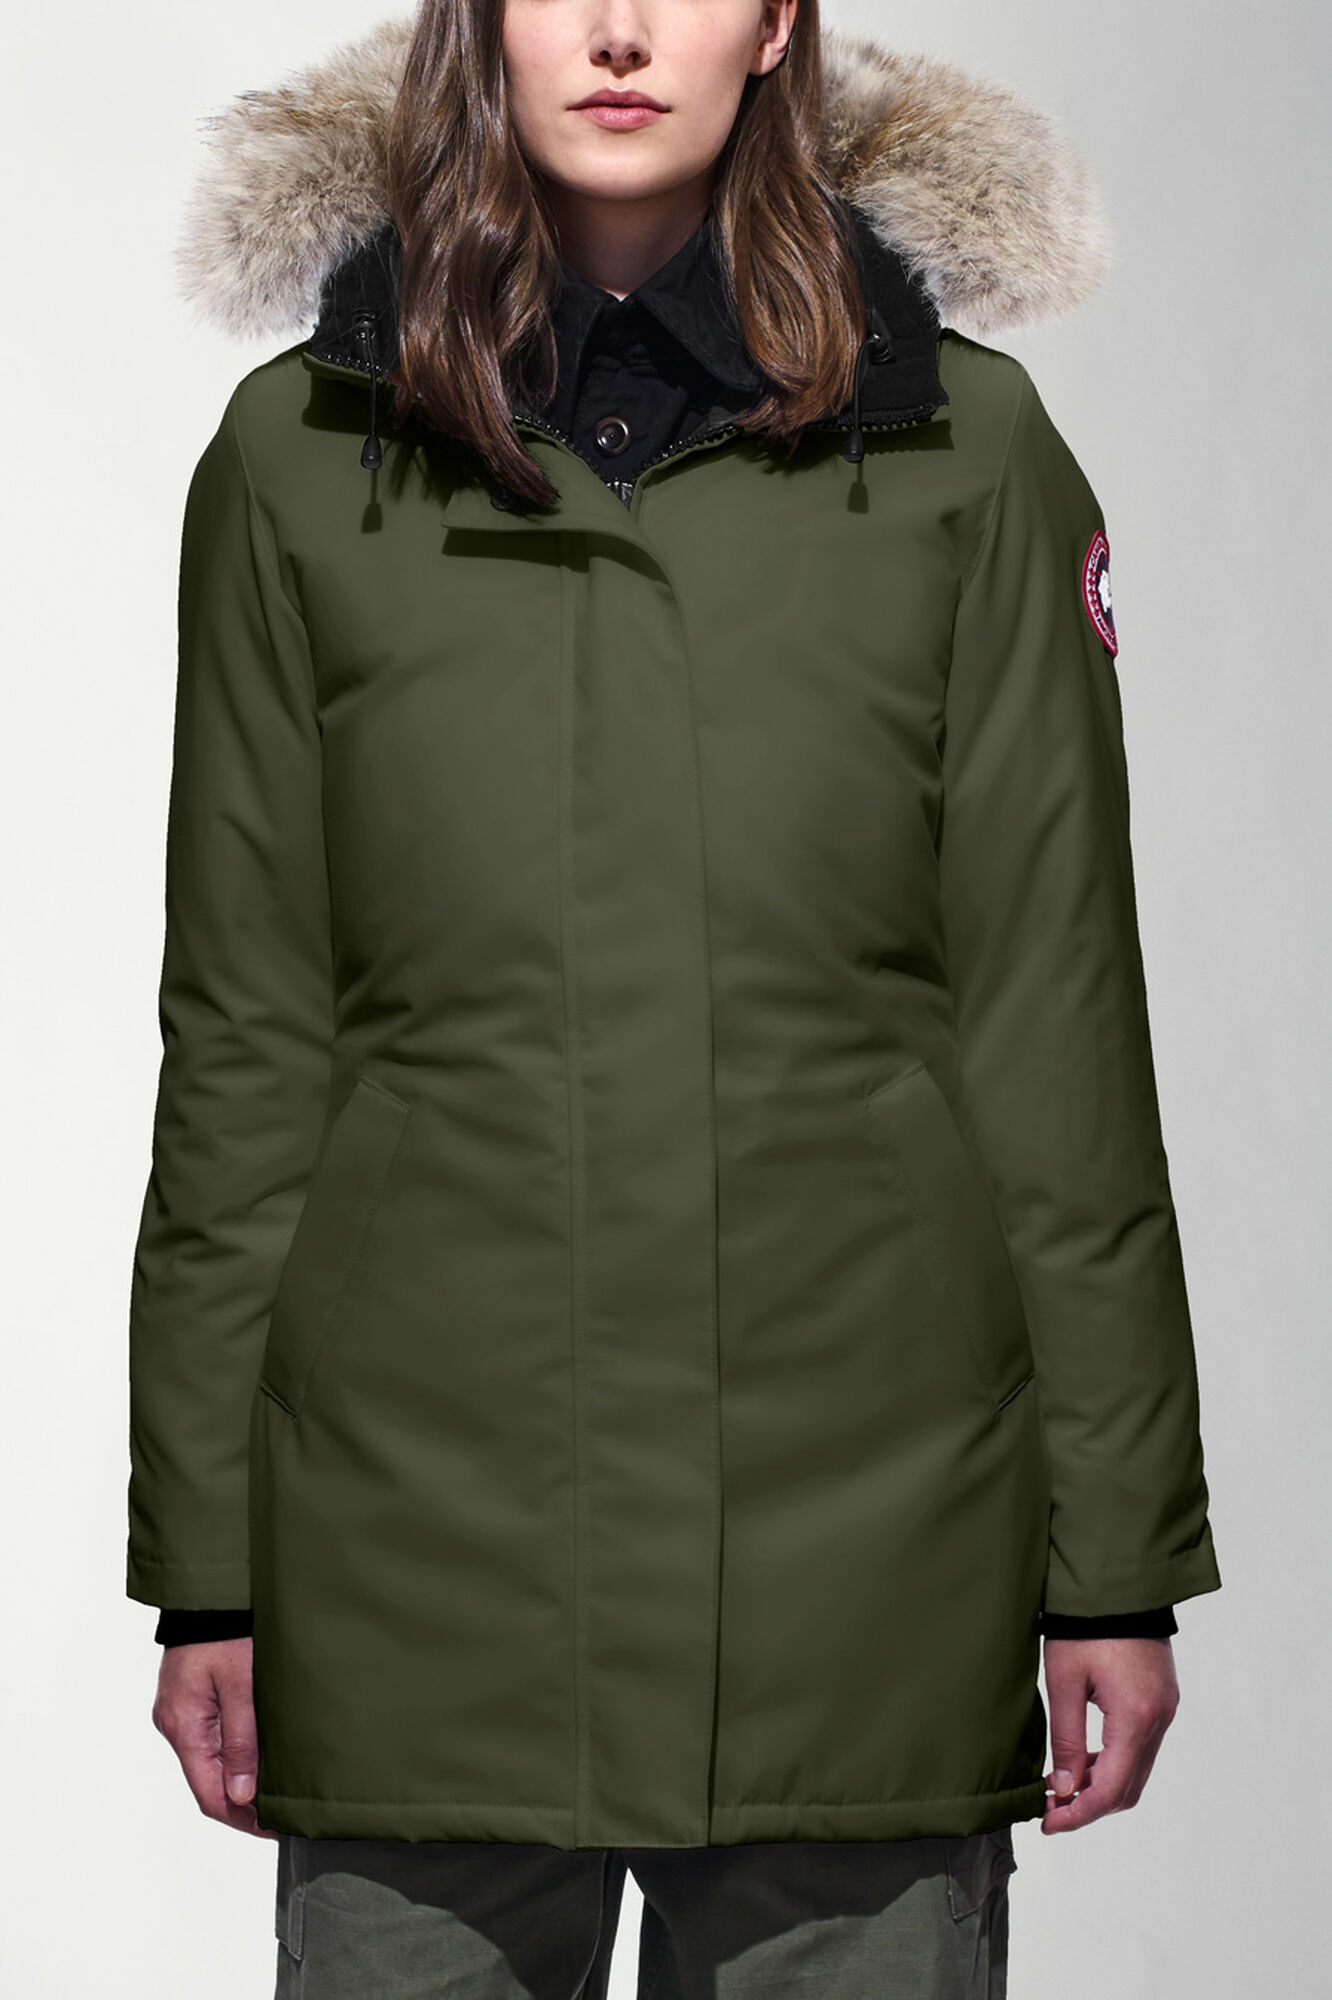 Canada Goose expedition parka replica authentic - Montebello Parka | Canada Goose?